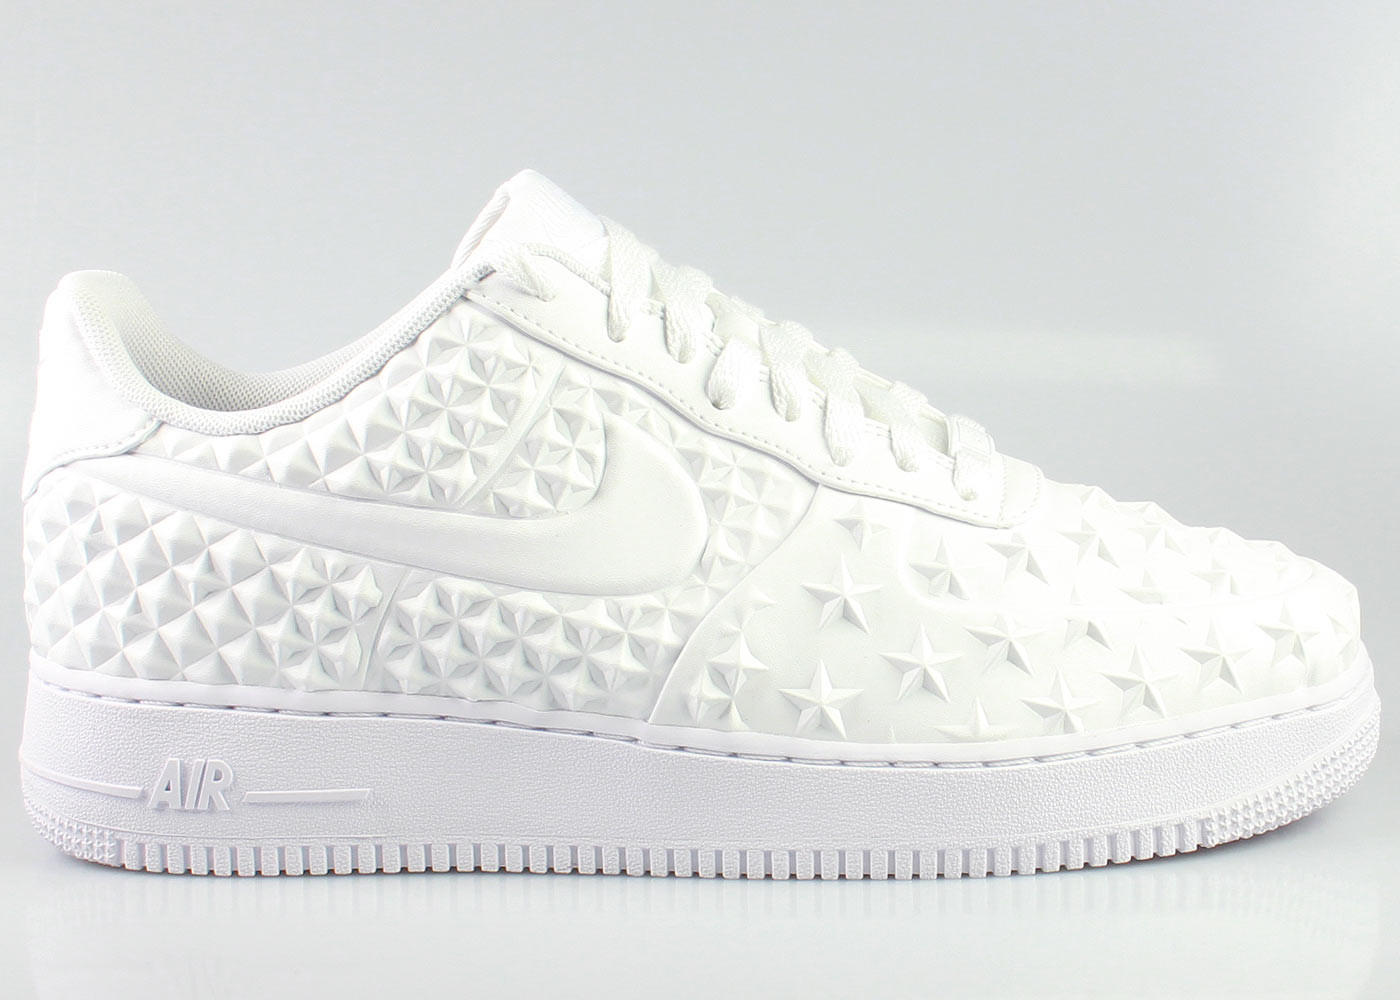 Nike Men s Air Force 1 Low LV8 VT Independence Day Pack - White 188942e9f